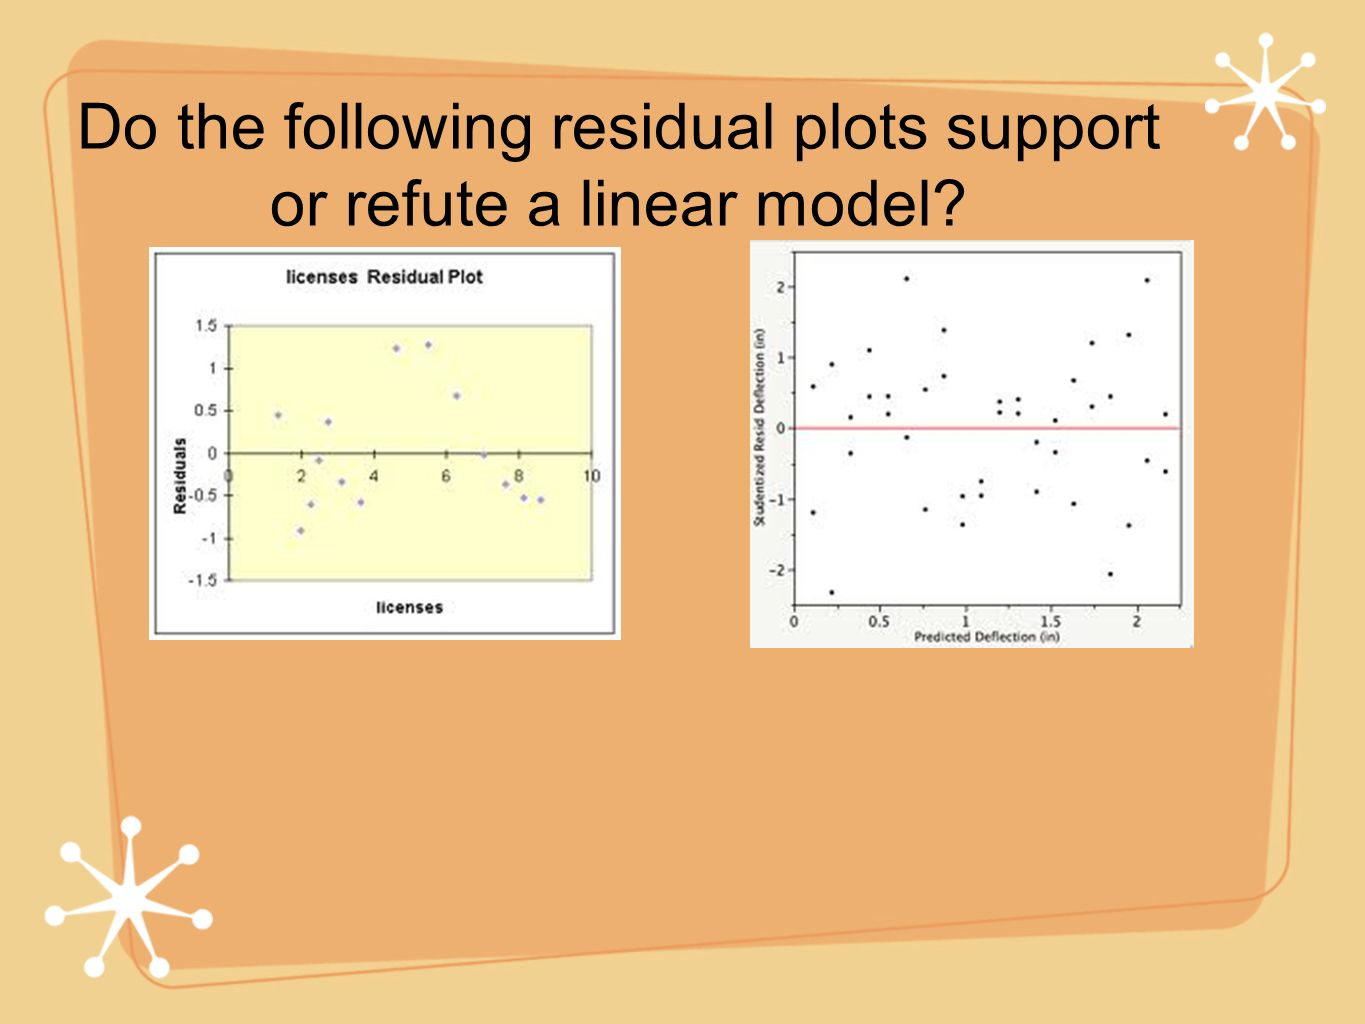 Do the following residual plots support or refute a linear model